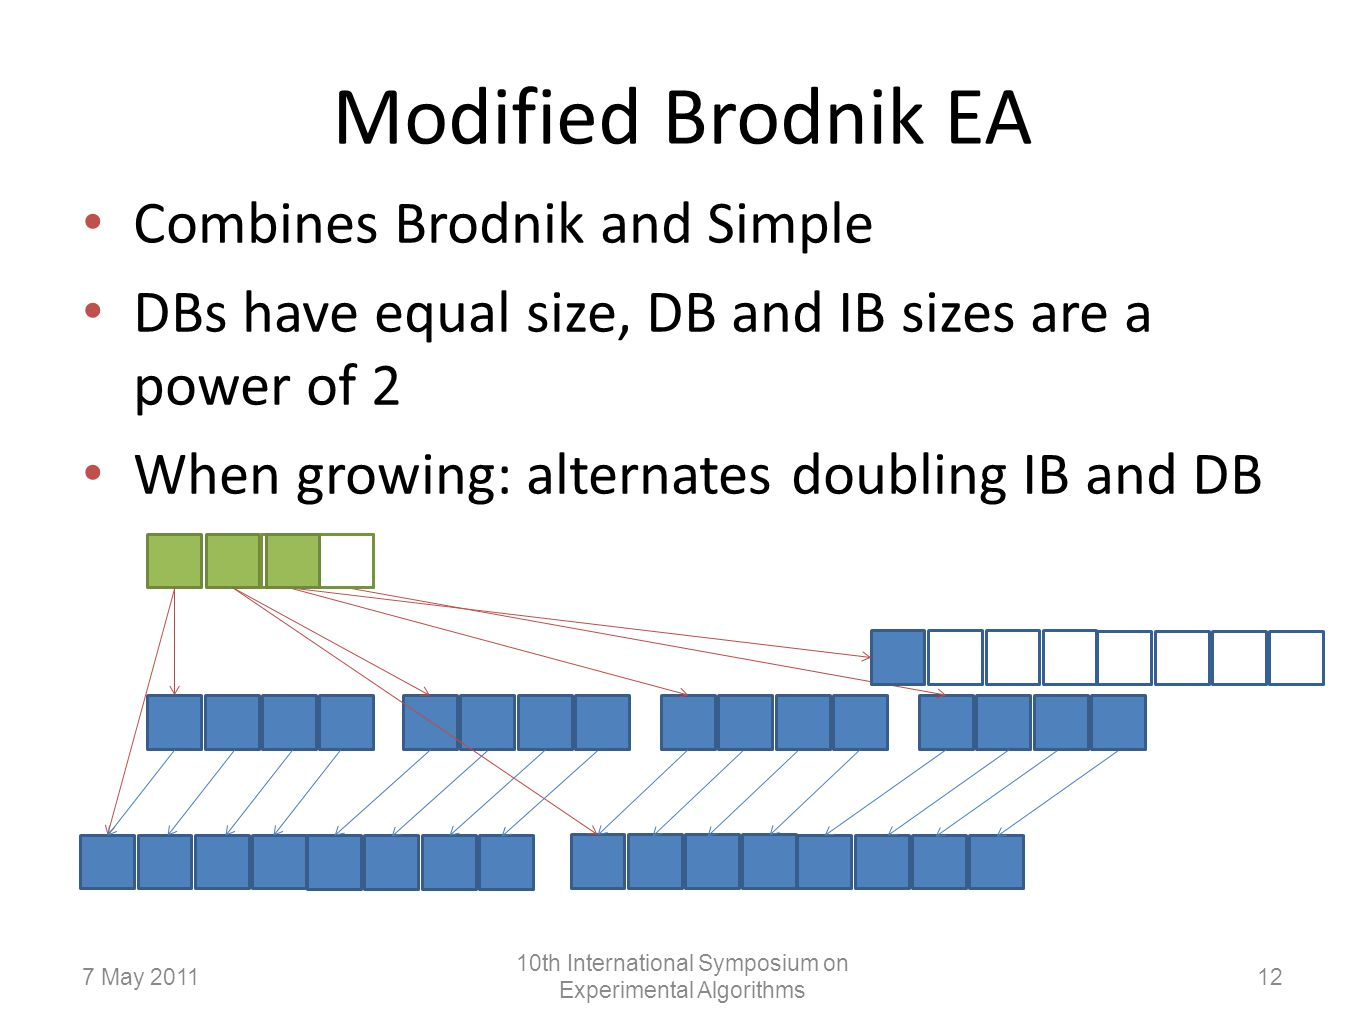 Modified Brodnik EA Combines Brodnik and Simple DBs have equal size, DB and IB sizes are a power of 2 When growing: alternates doubling IB and DB 127 May 2011 10th International Symposium on Experimental Algorithms